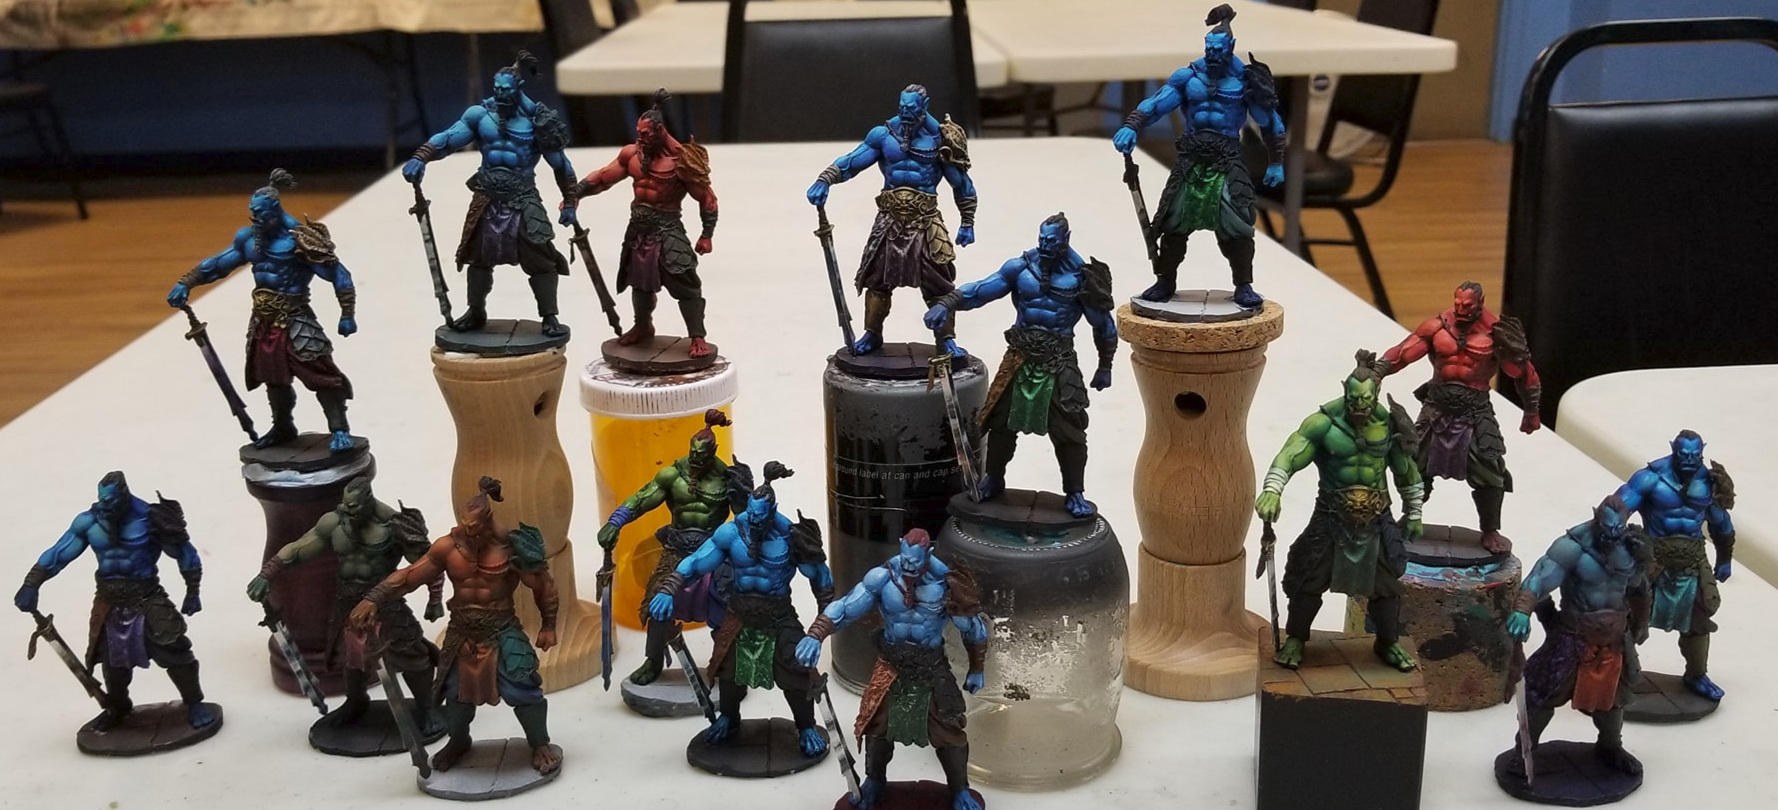 A lot of good looking models after a couple days of painting.